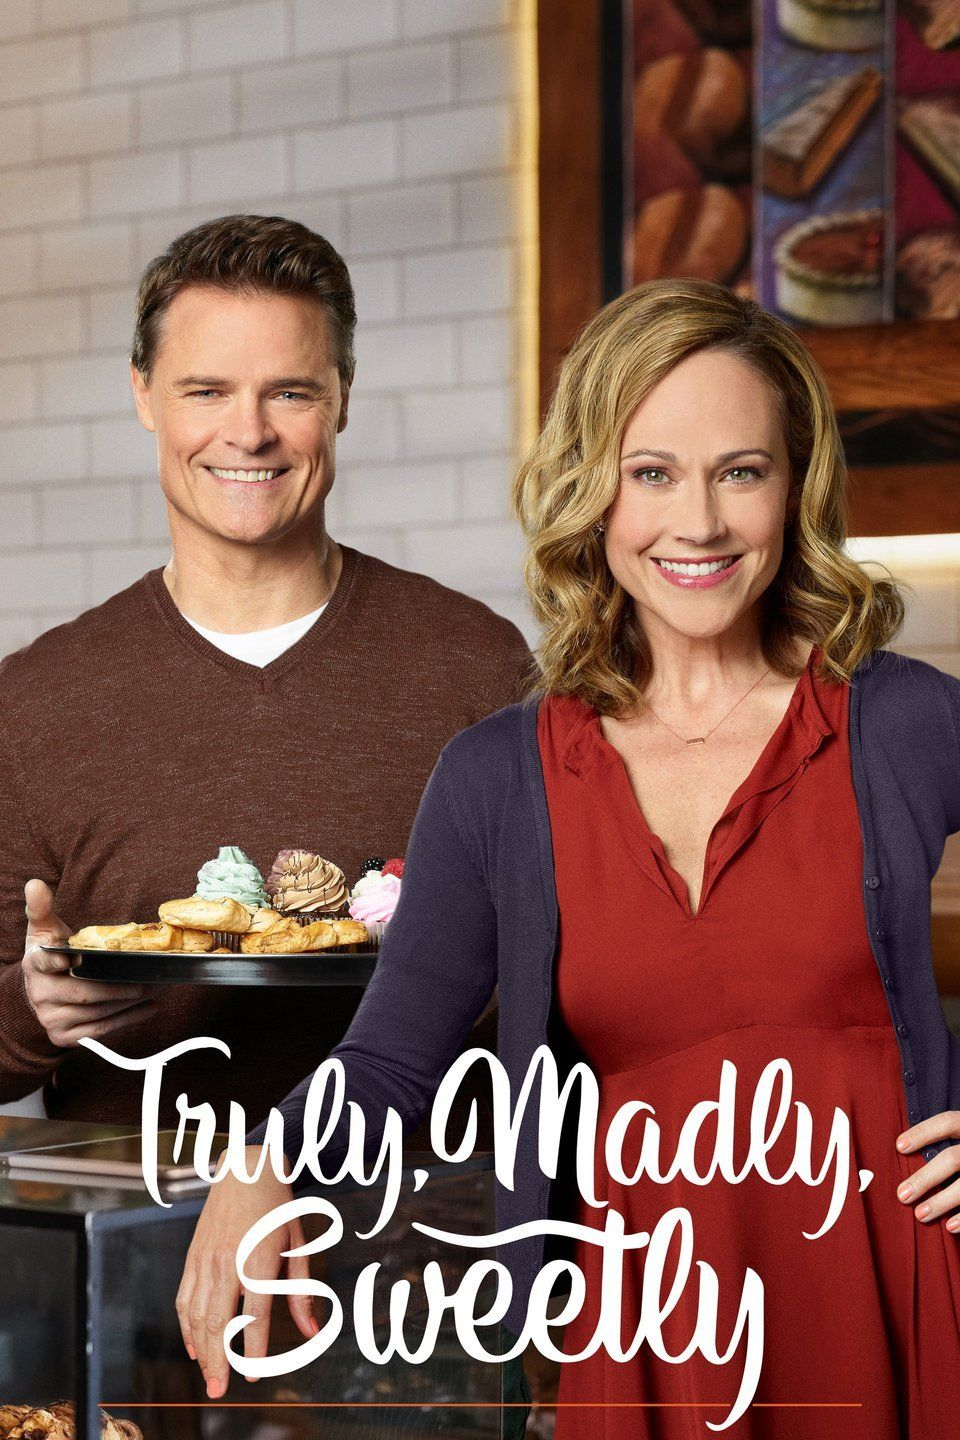 Autumn 20185 Truly, Madly, Sweetly (2018) Movies